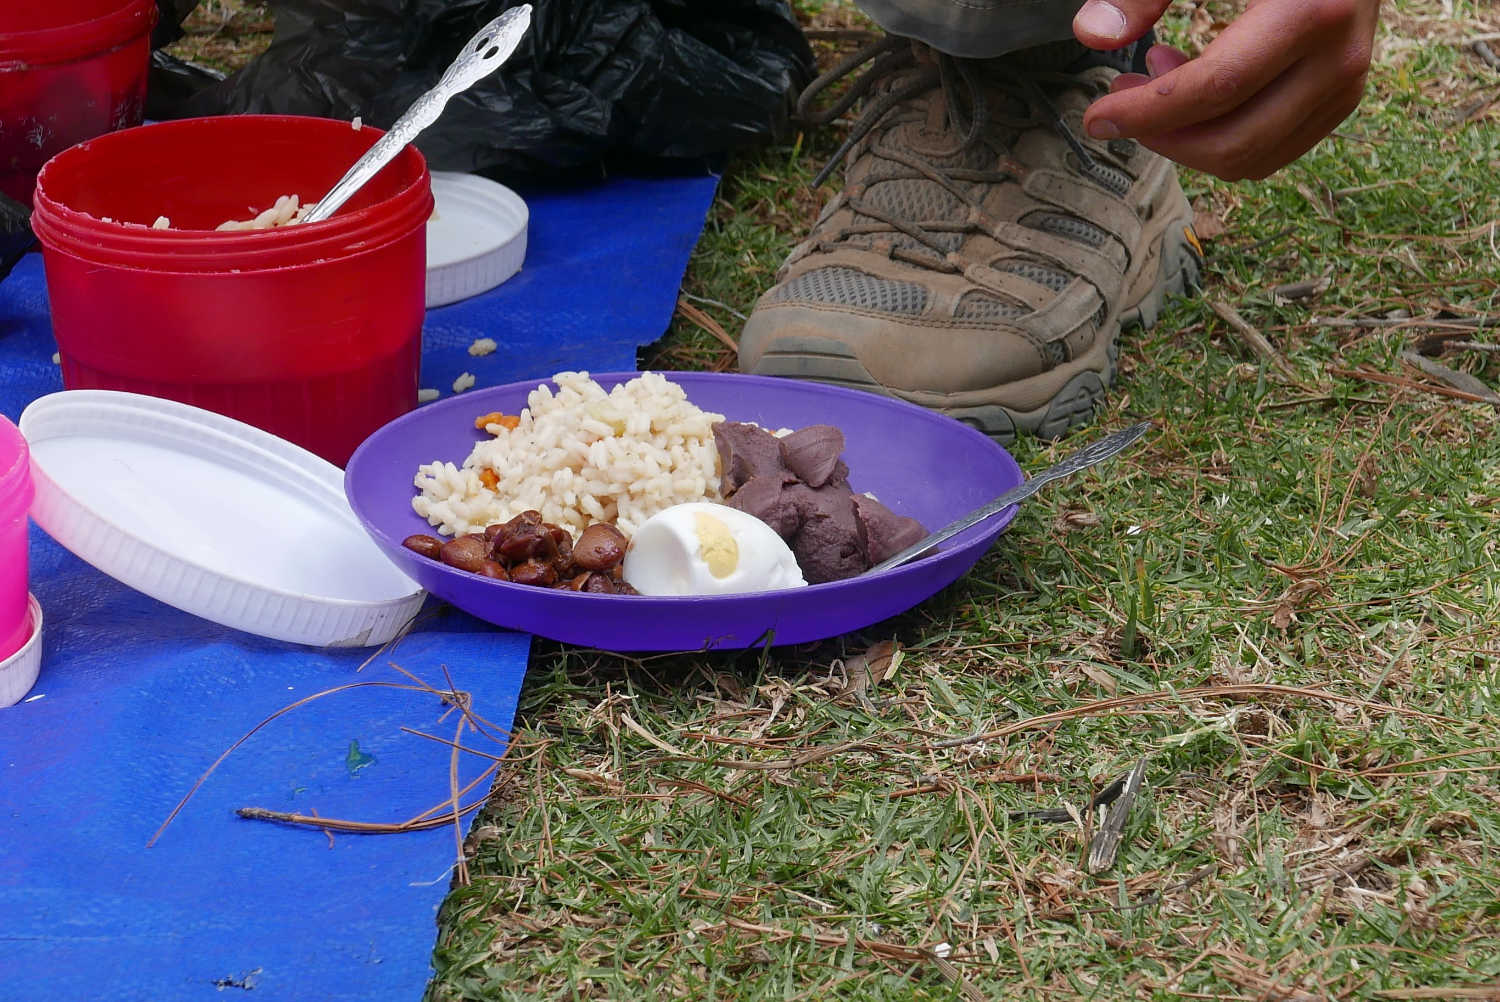 The lunch on the second day of the hike to Lake Atitlan